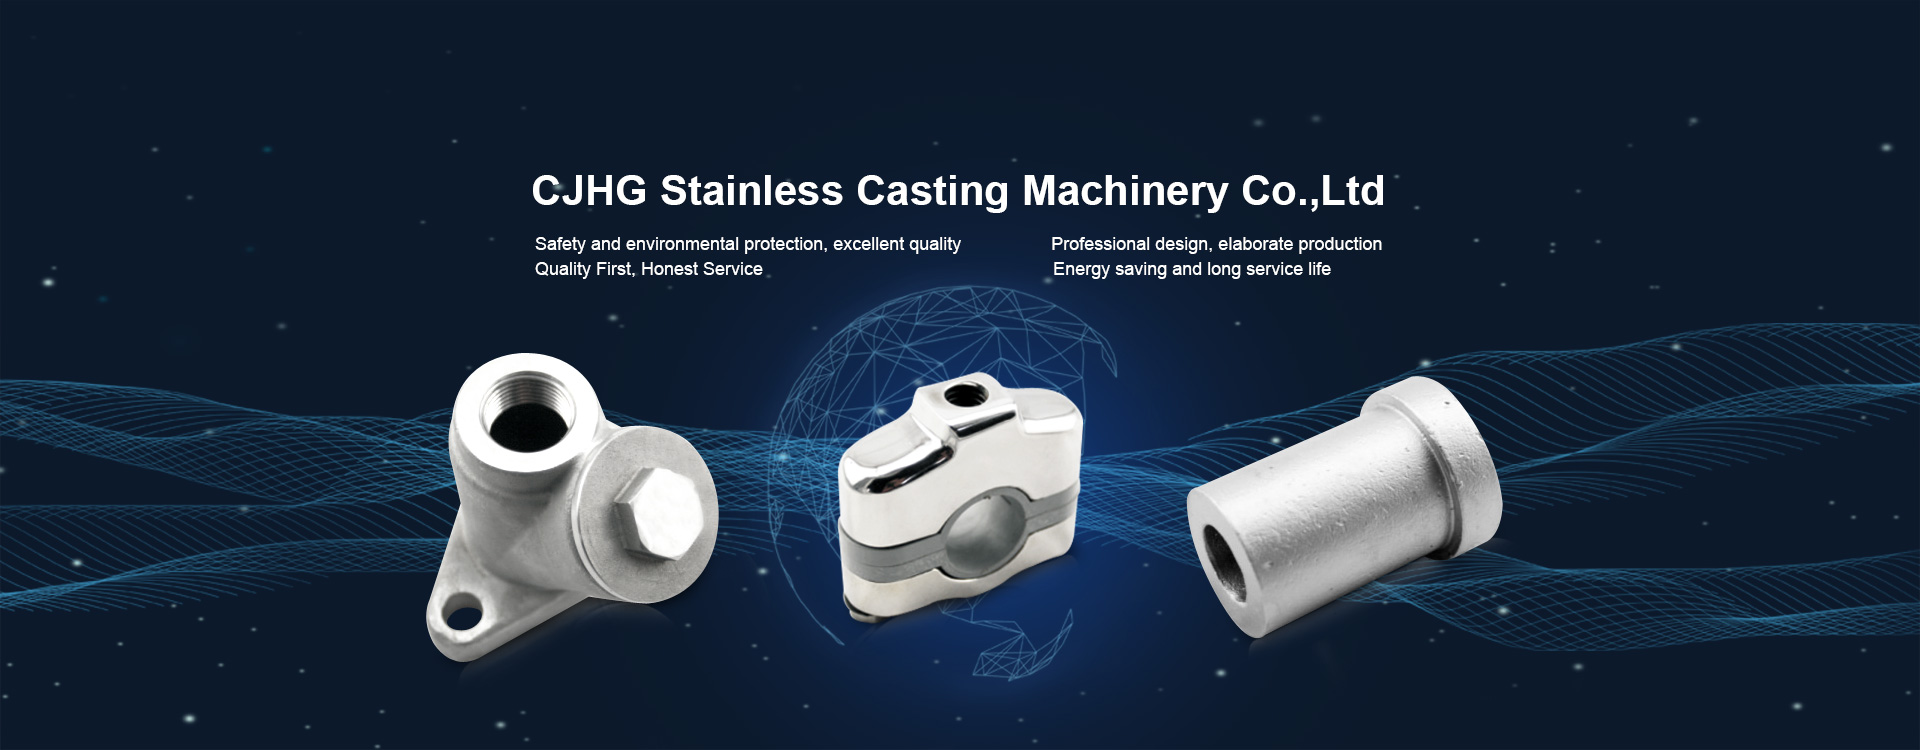 Pro-011-CJHG Stainless Casting Machinery Co.,Ltd